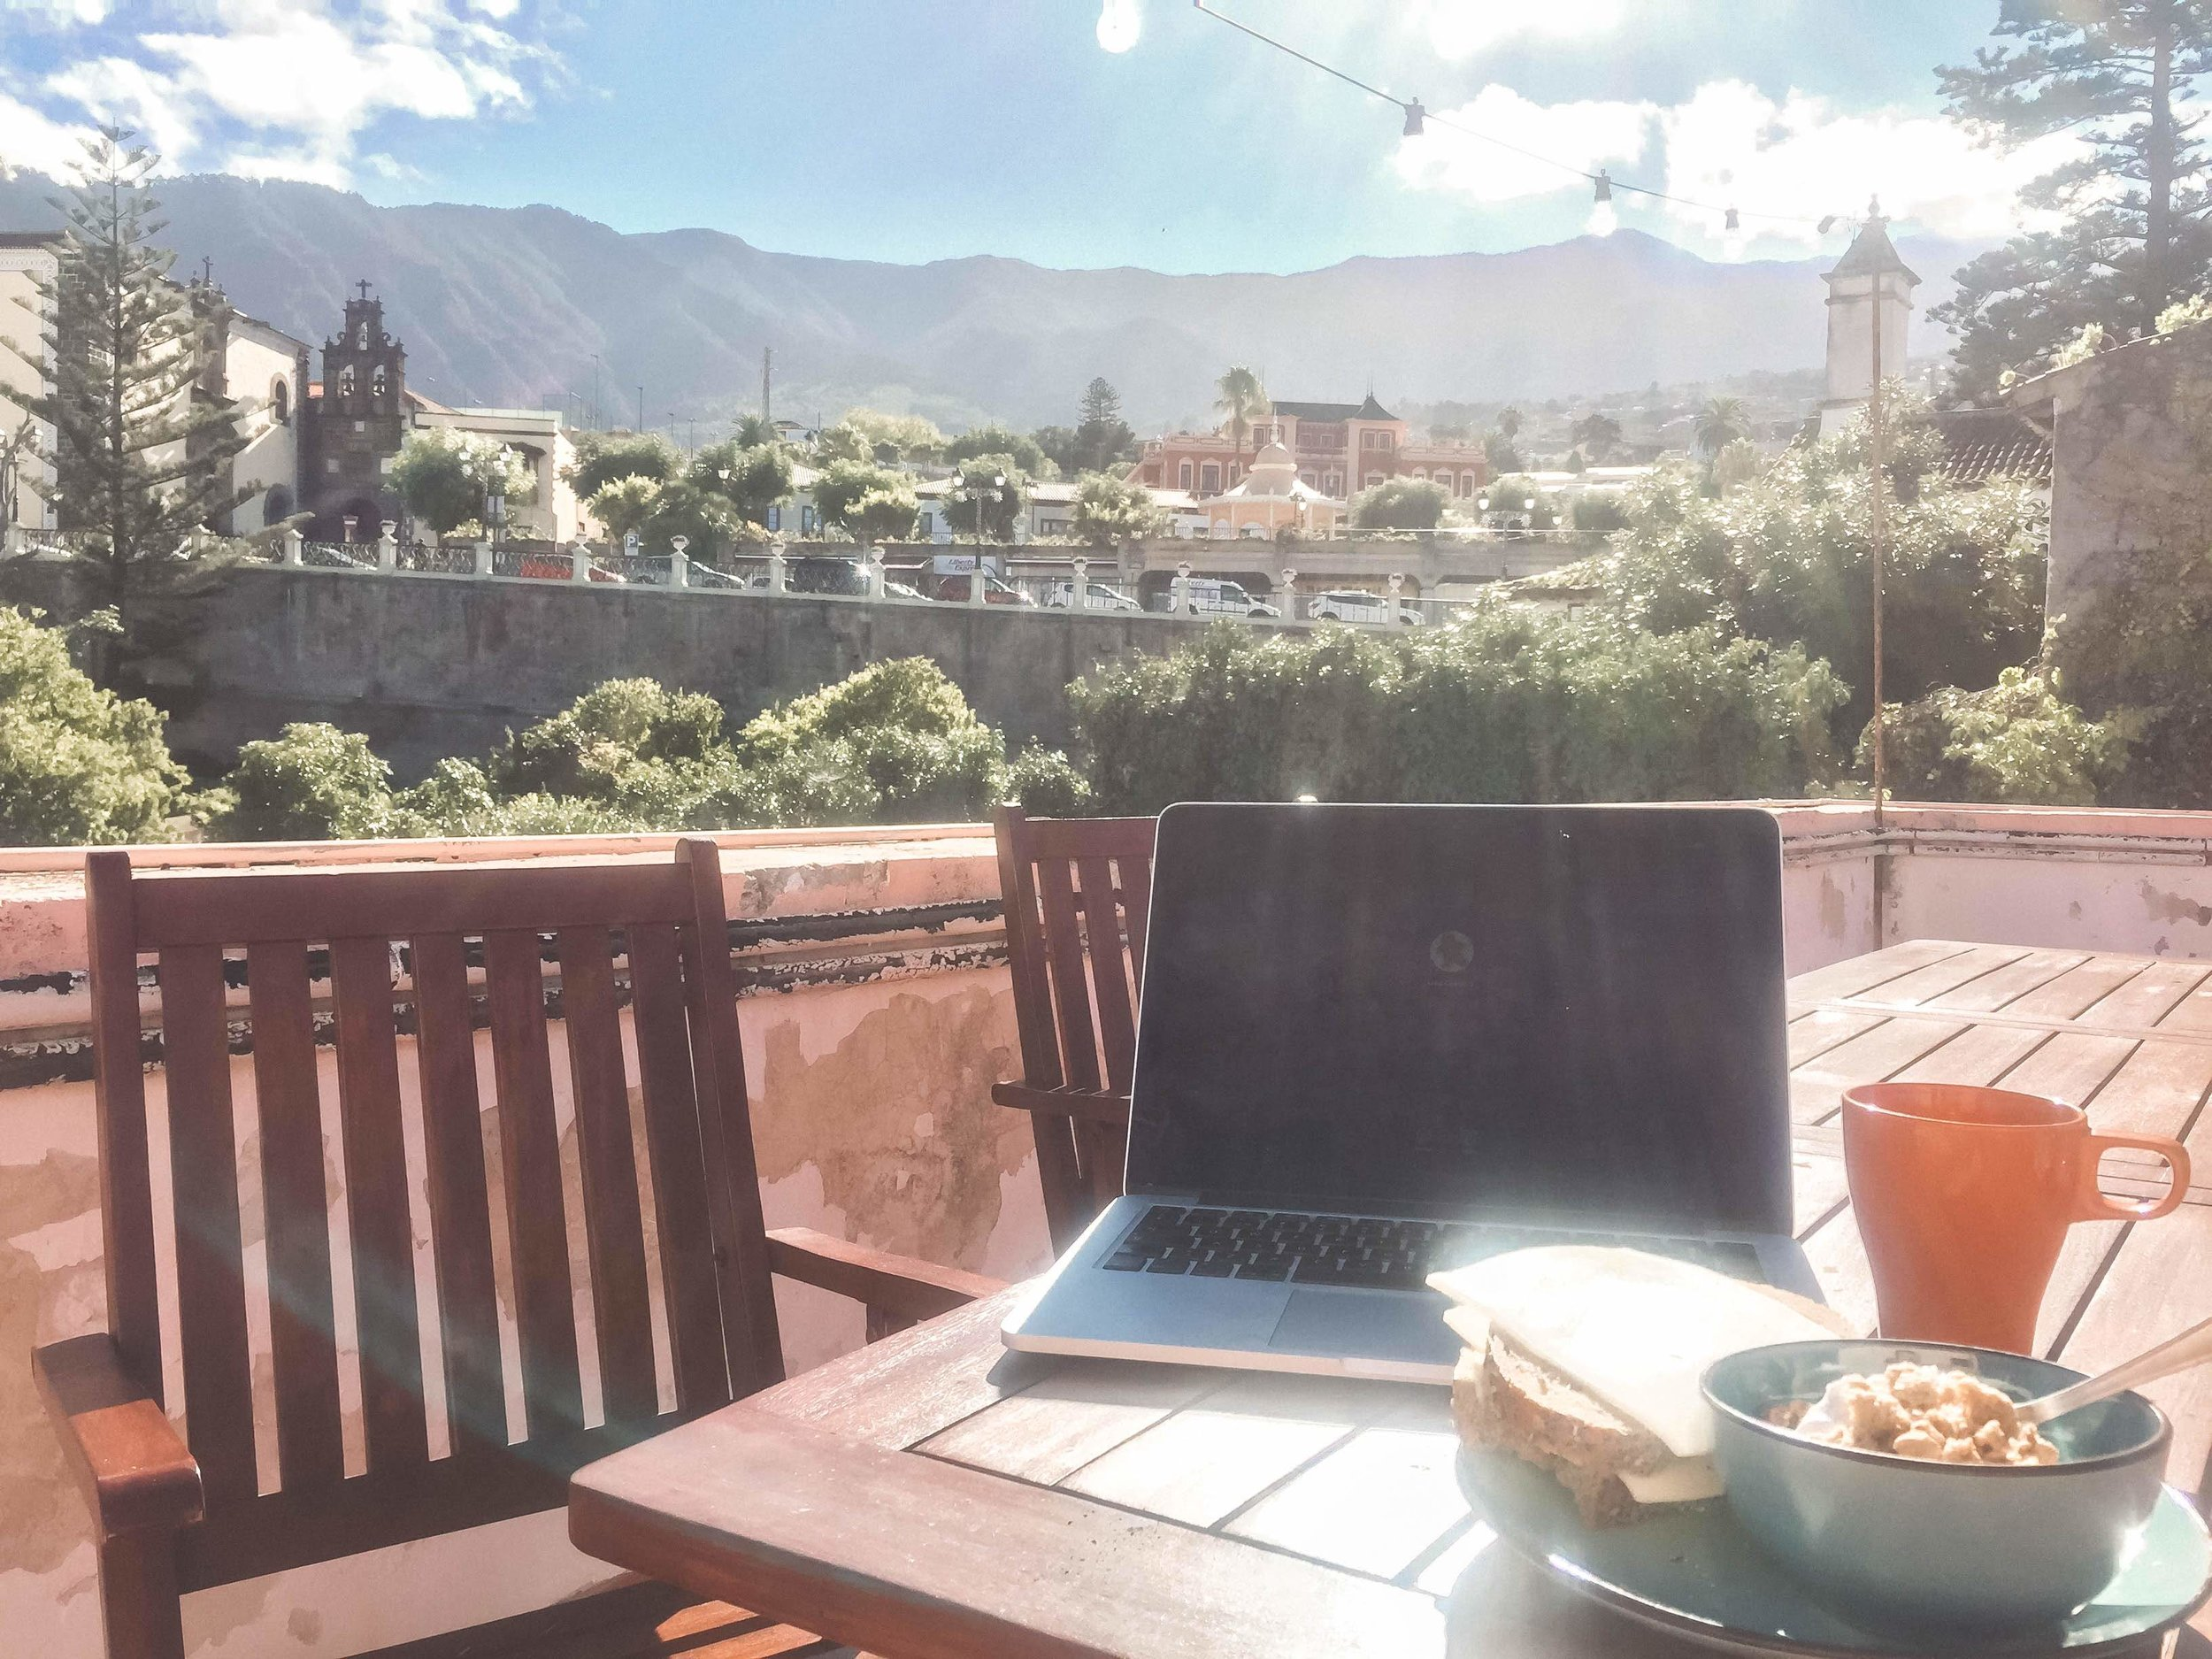 Why work in an office if you can work from here?